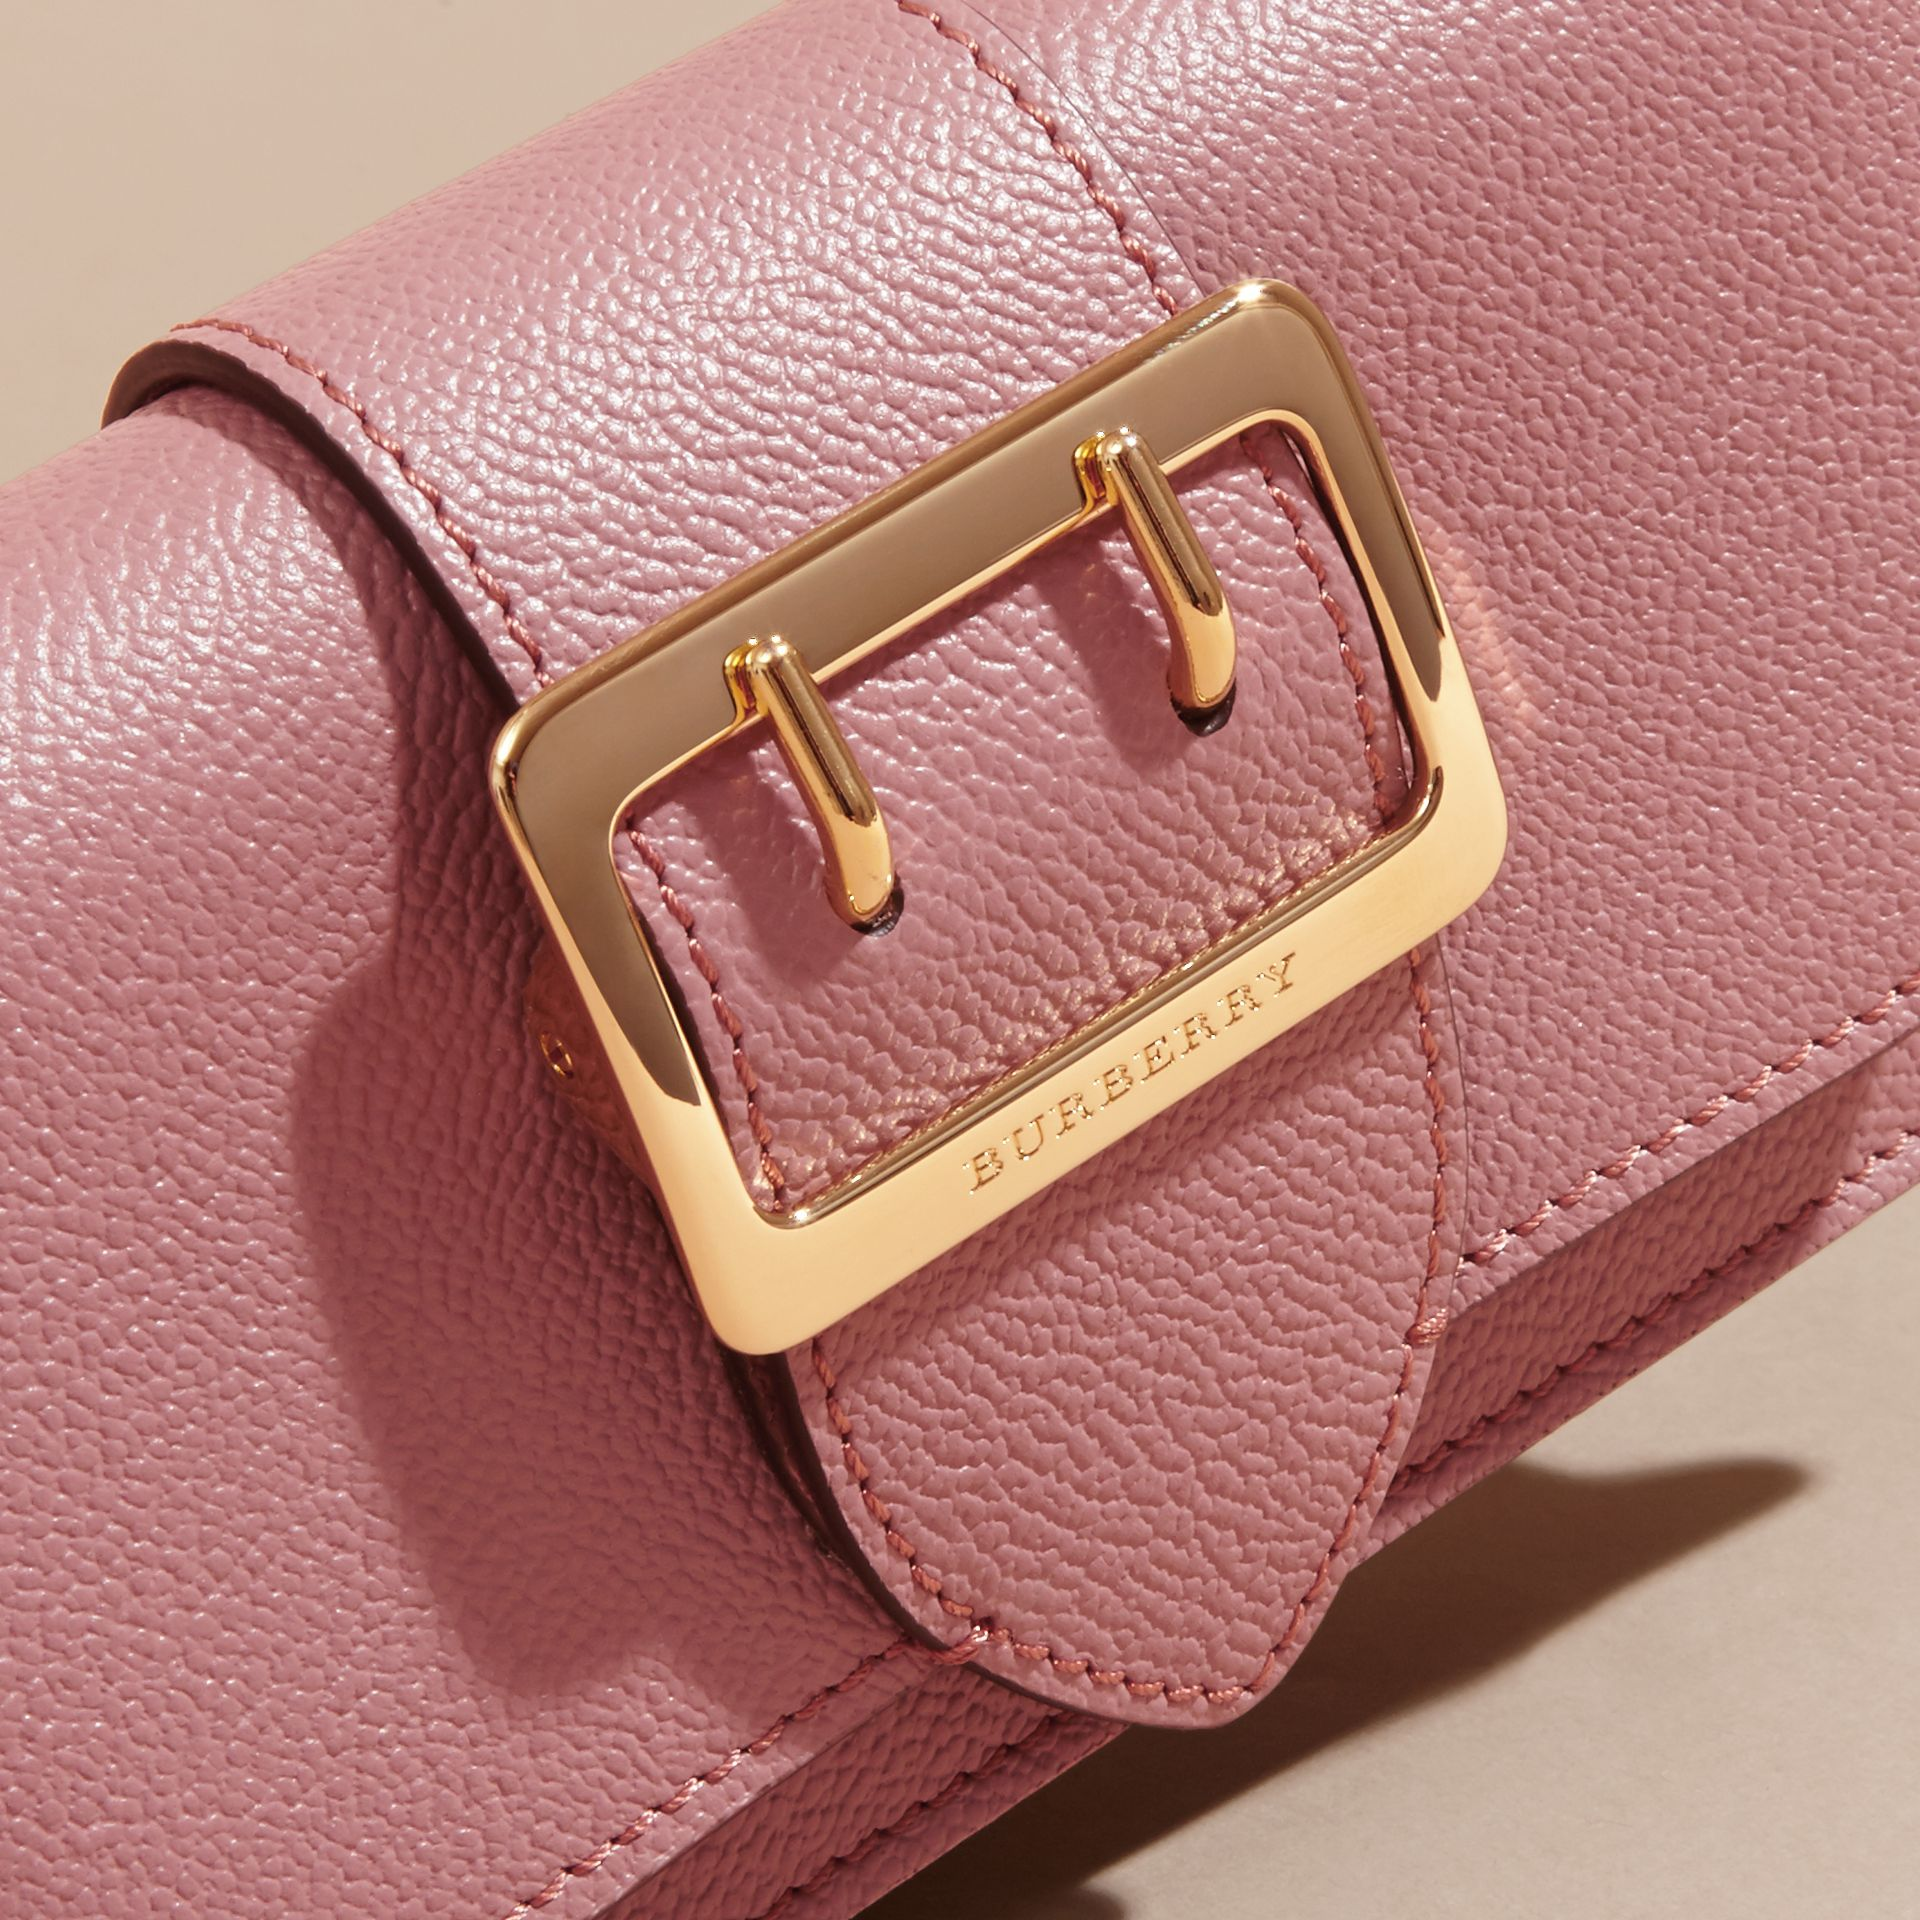 The Mini Buckle Bag in Grainy Leather in Dusty Pink - Women | Burberry Singapore - gallery image 2